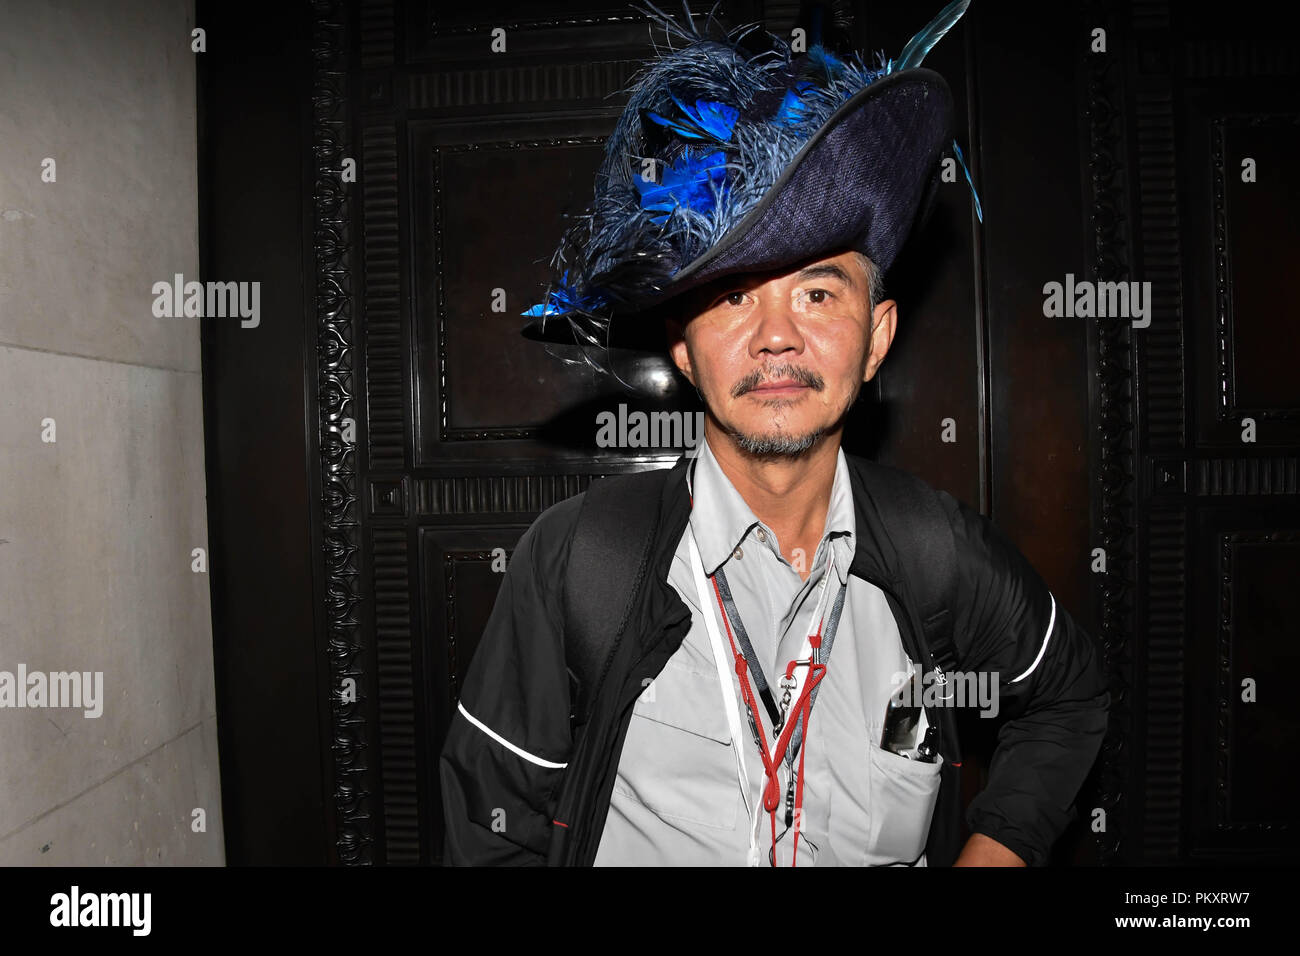 fb8808c724f2df 15th September 2018. See the hat man from 'Picture Capital' modelling for  the Hats Designer Carollee Emery of Brazen Canary photoshoot at Fashion  Scout ...